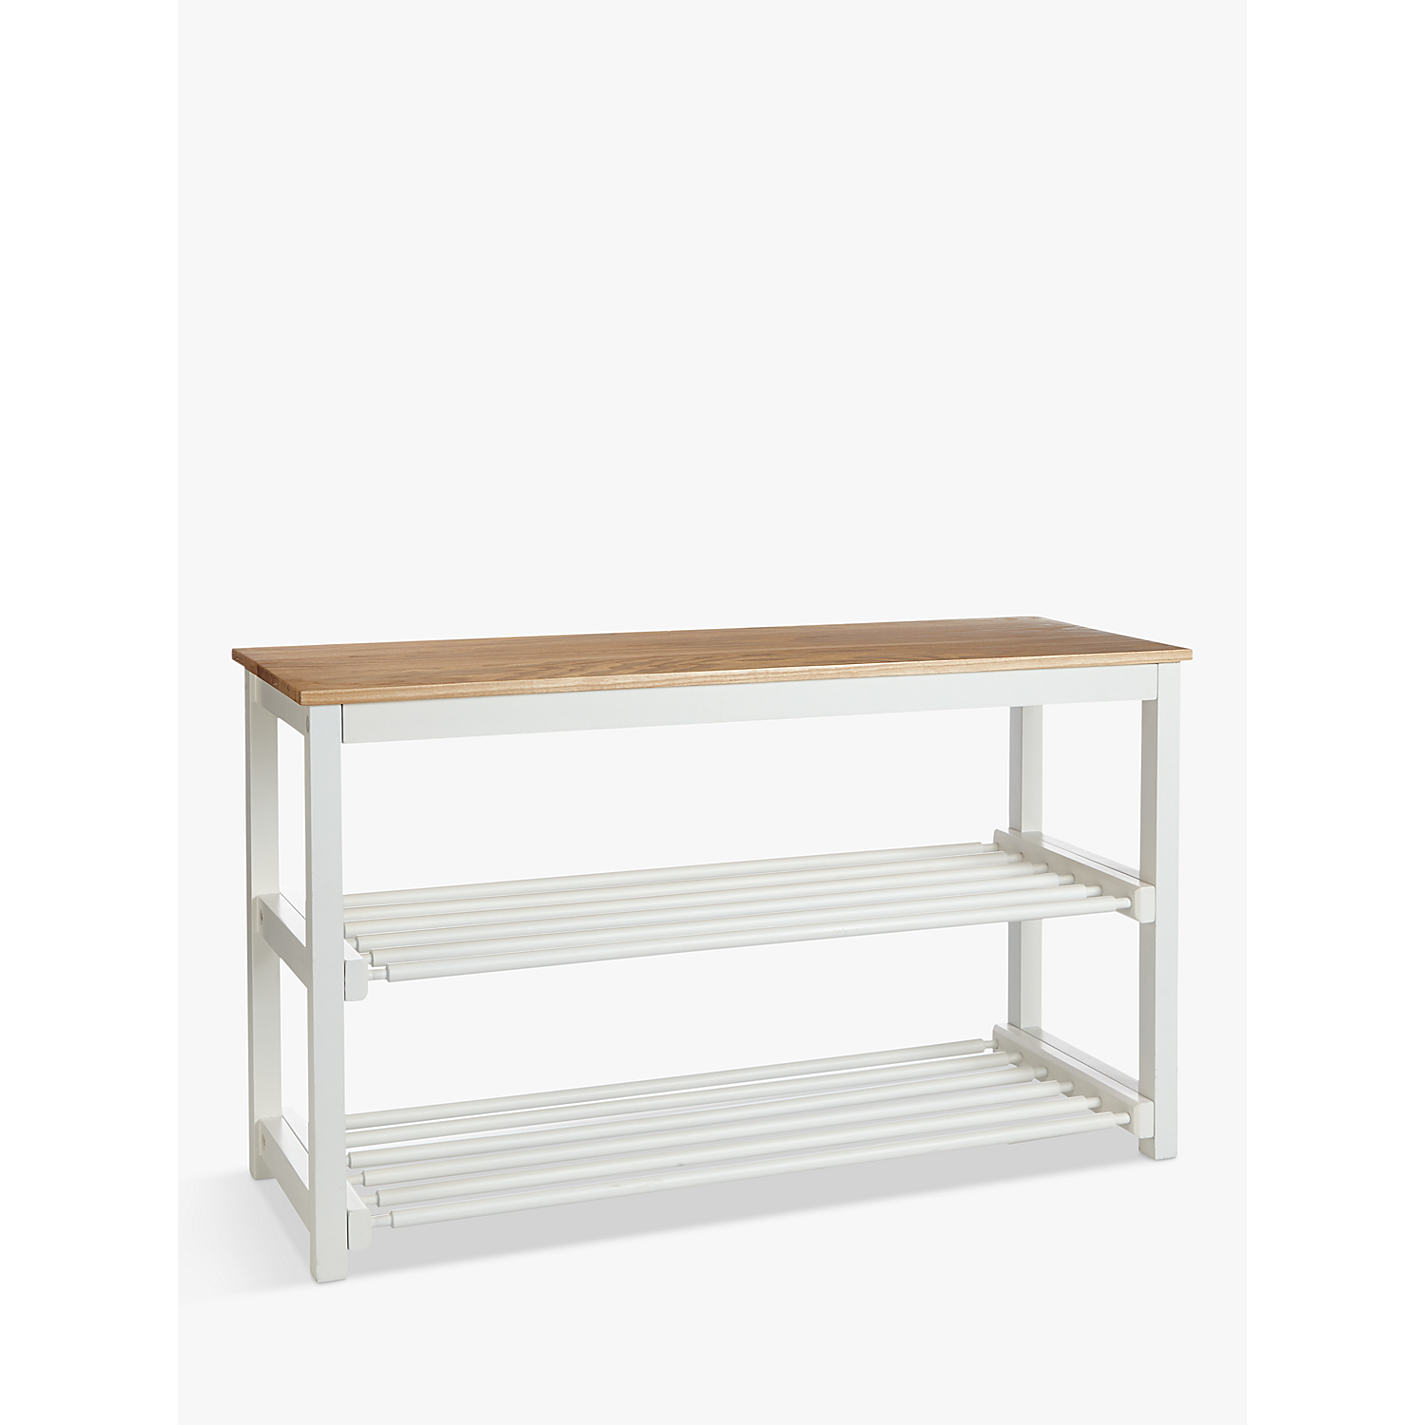 buy john lewis croft collection shoe rack lily white online at